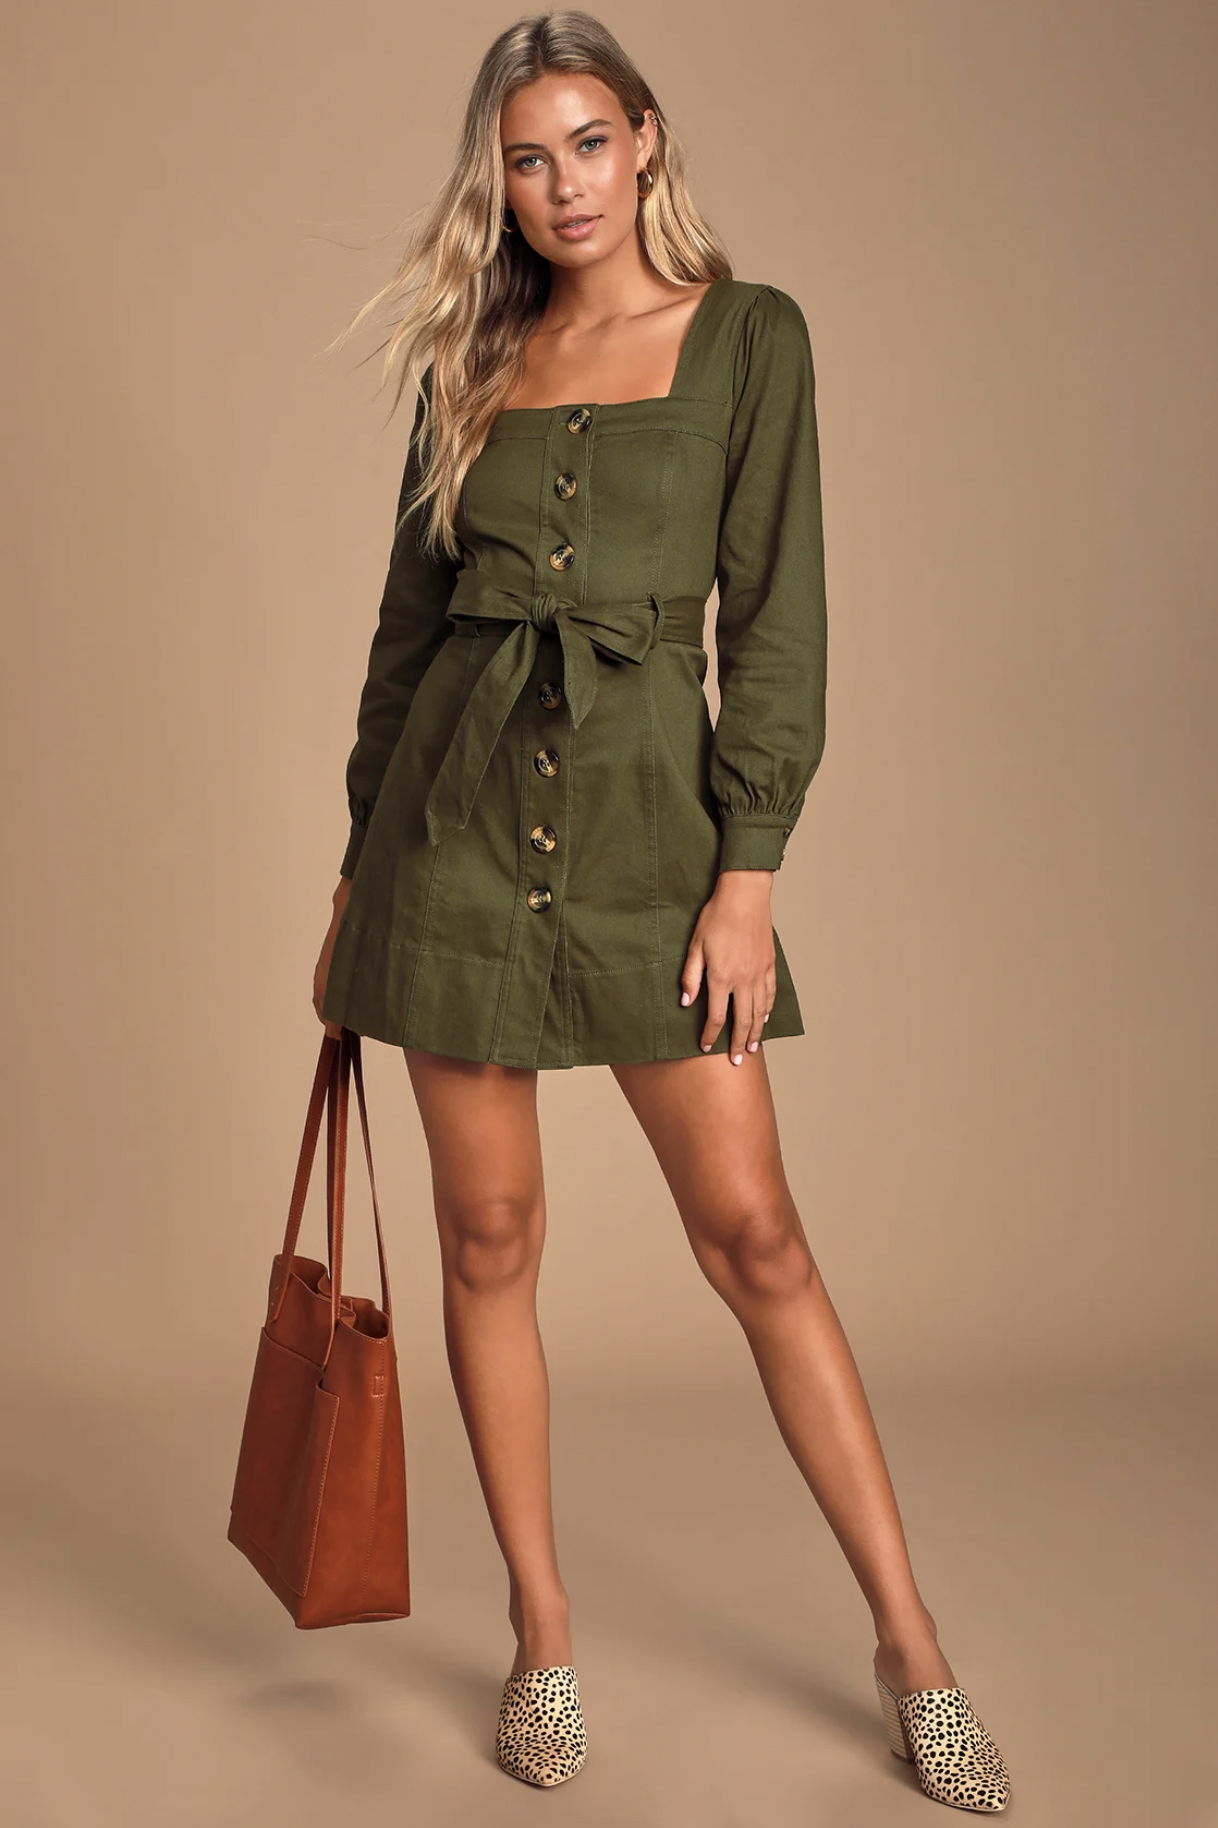 J.O.A. TAYAH OLIVE GREEN LONG SLEEVE BUTTON-UP MINI DRESS